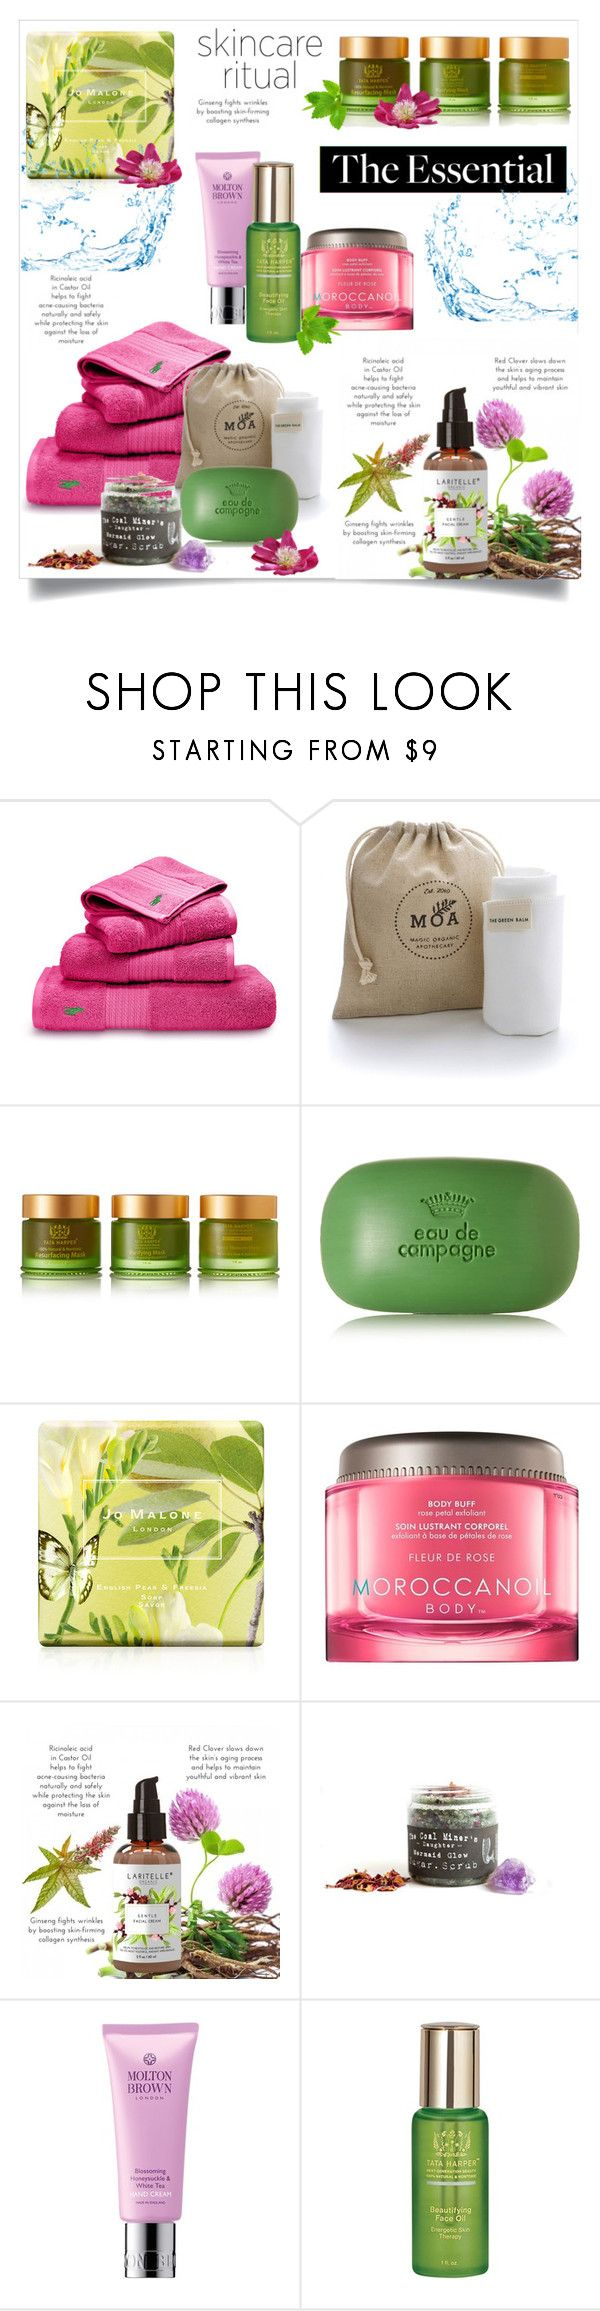 """""""Skincare"""" by ornellag ❤ liked on Polyvore featuring beauty, Ralph Lauren Home, MOA Magic Organic Apothecary, Tata Harper, Sisley, Jo Malone, Moroccanoil and Molton Brown"""